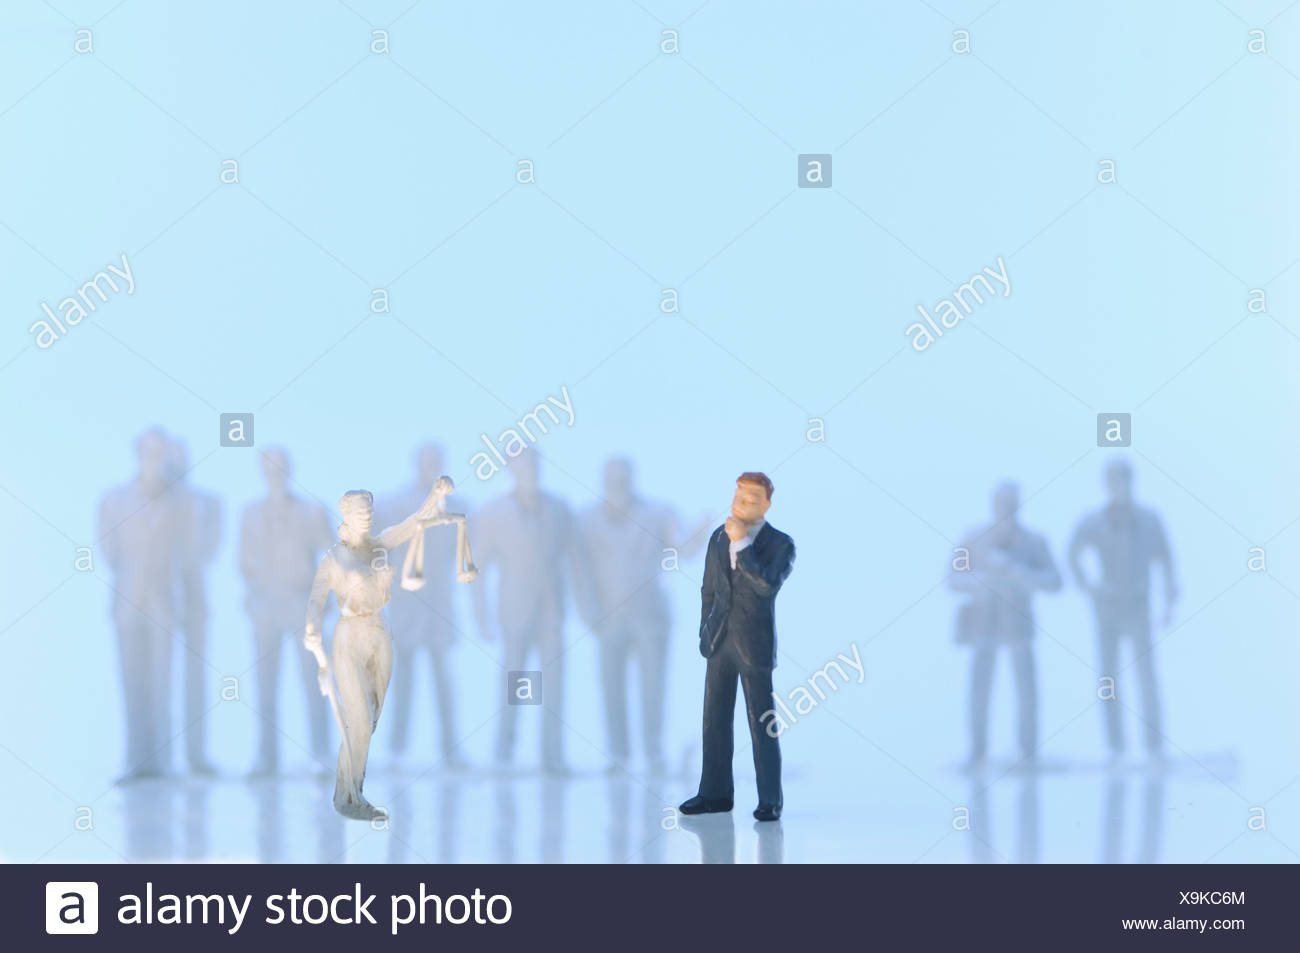 Figurine of justice and businessman on blue background Stock Photo